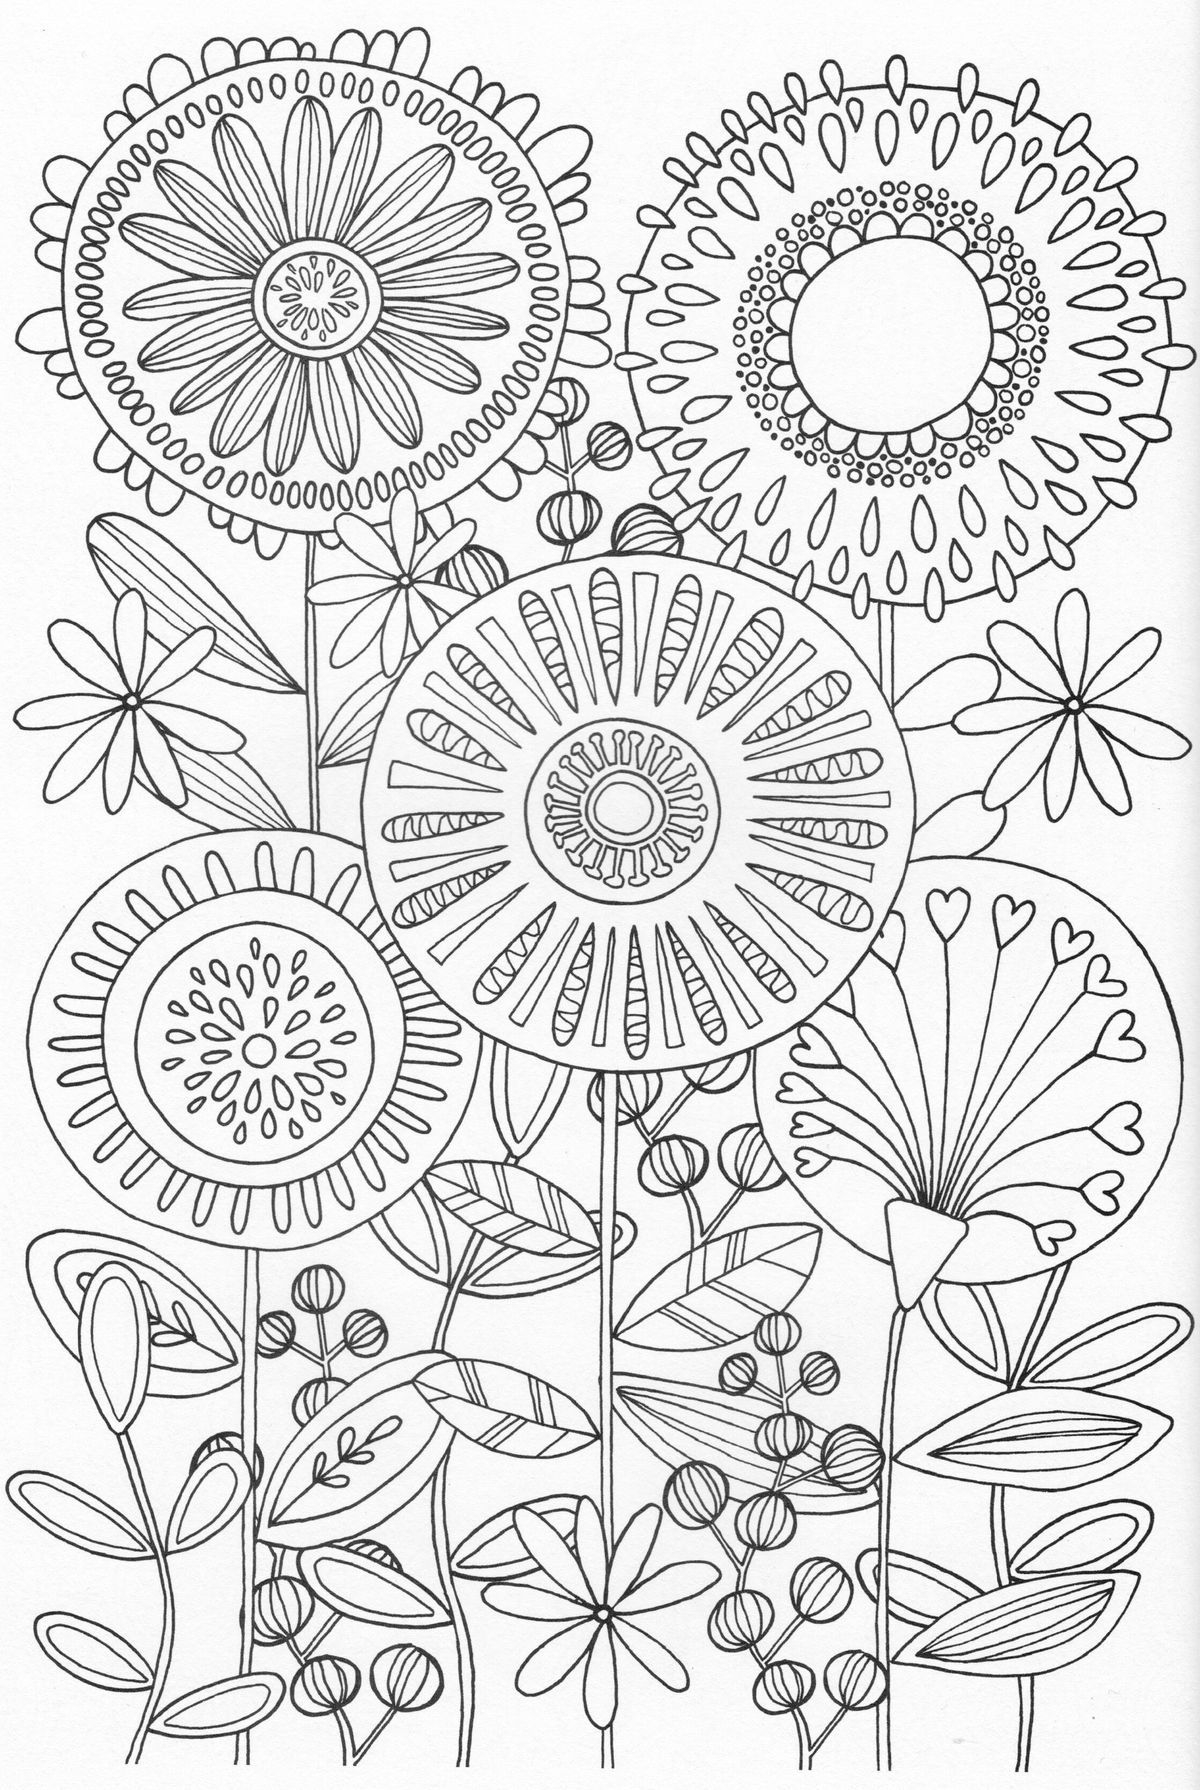 Flower Garden Coloring Pages  Printable 4t - Free Download